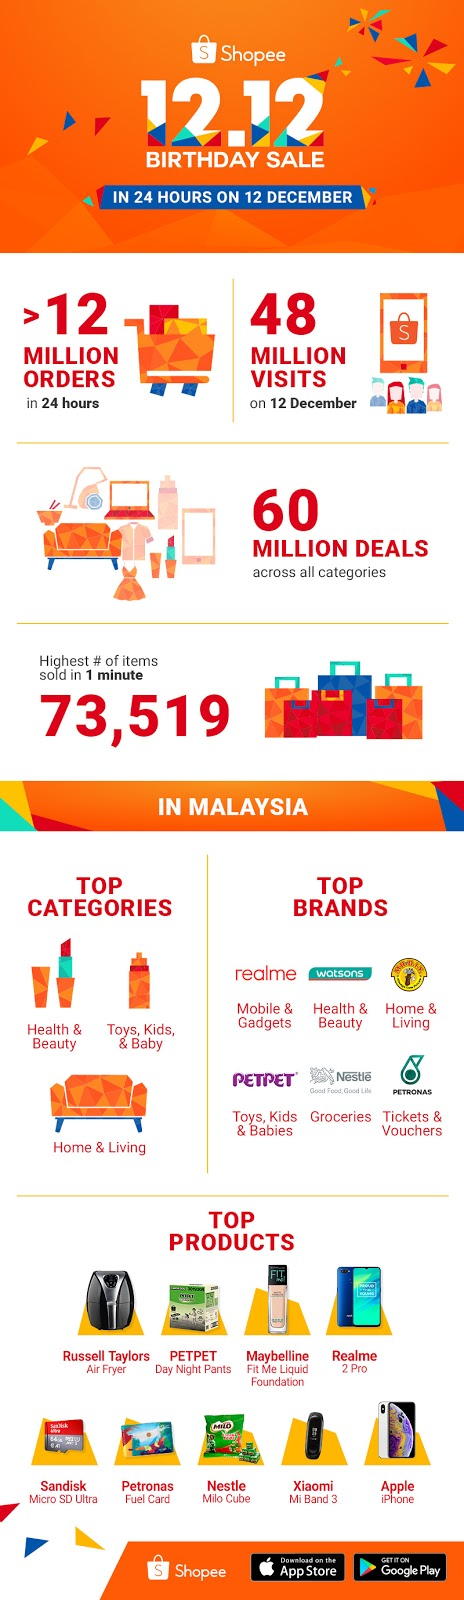 Shopee 12.12 Birthday Sale Infographic